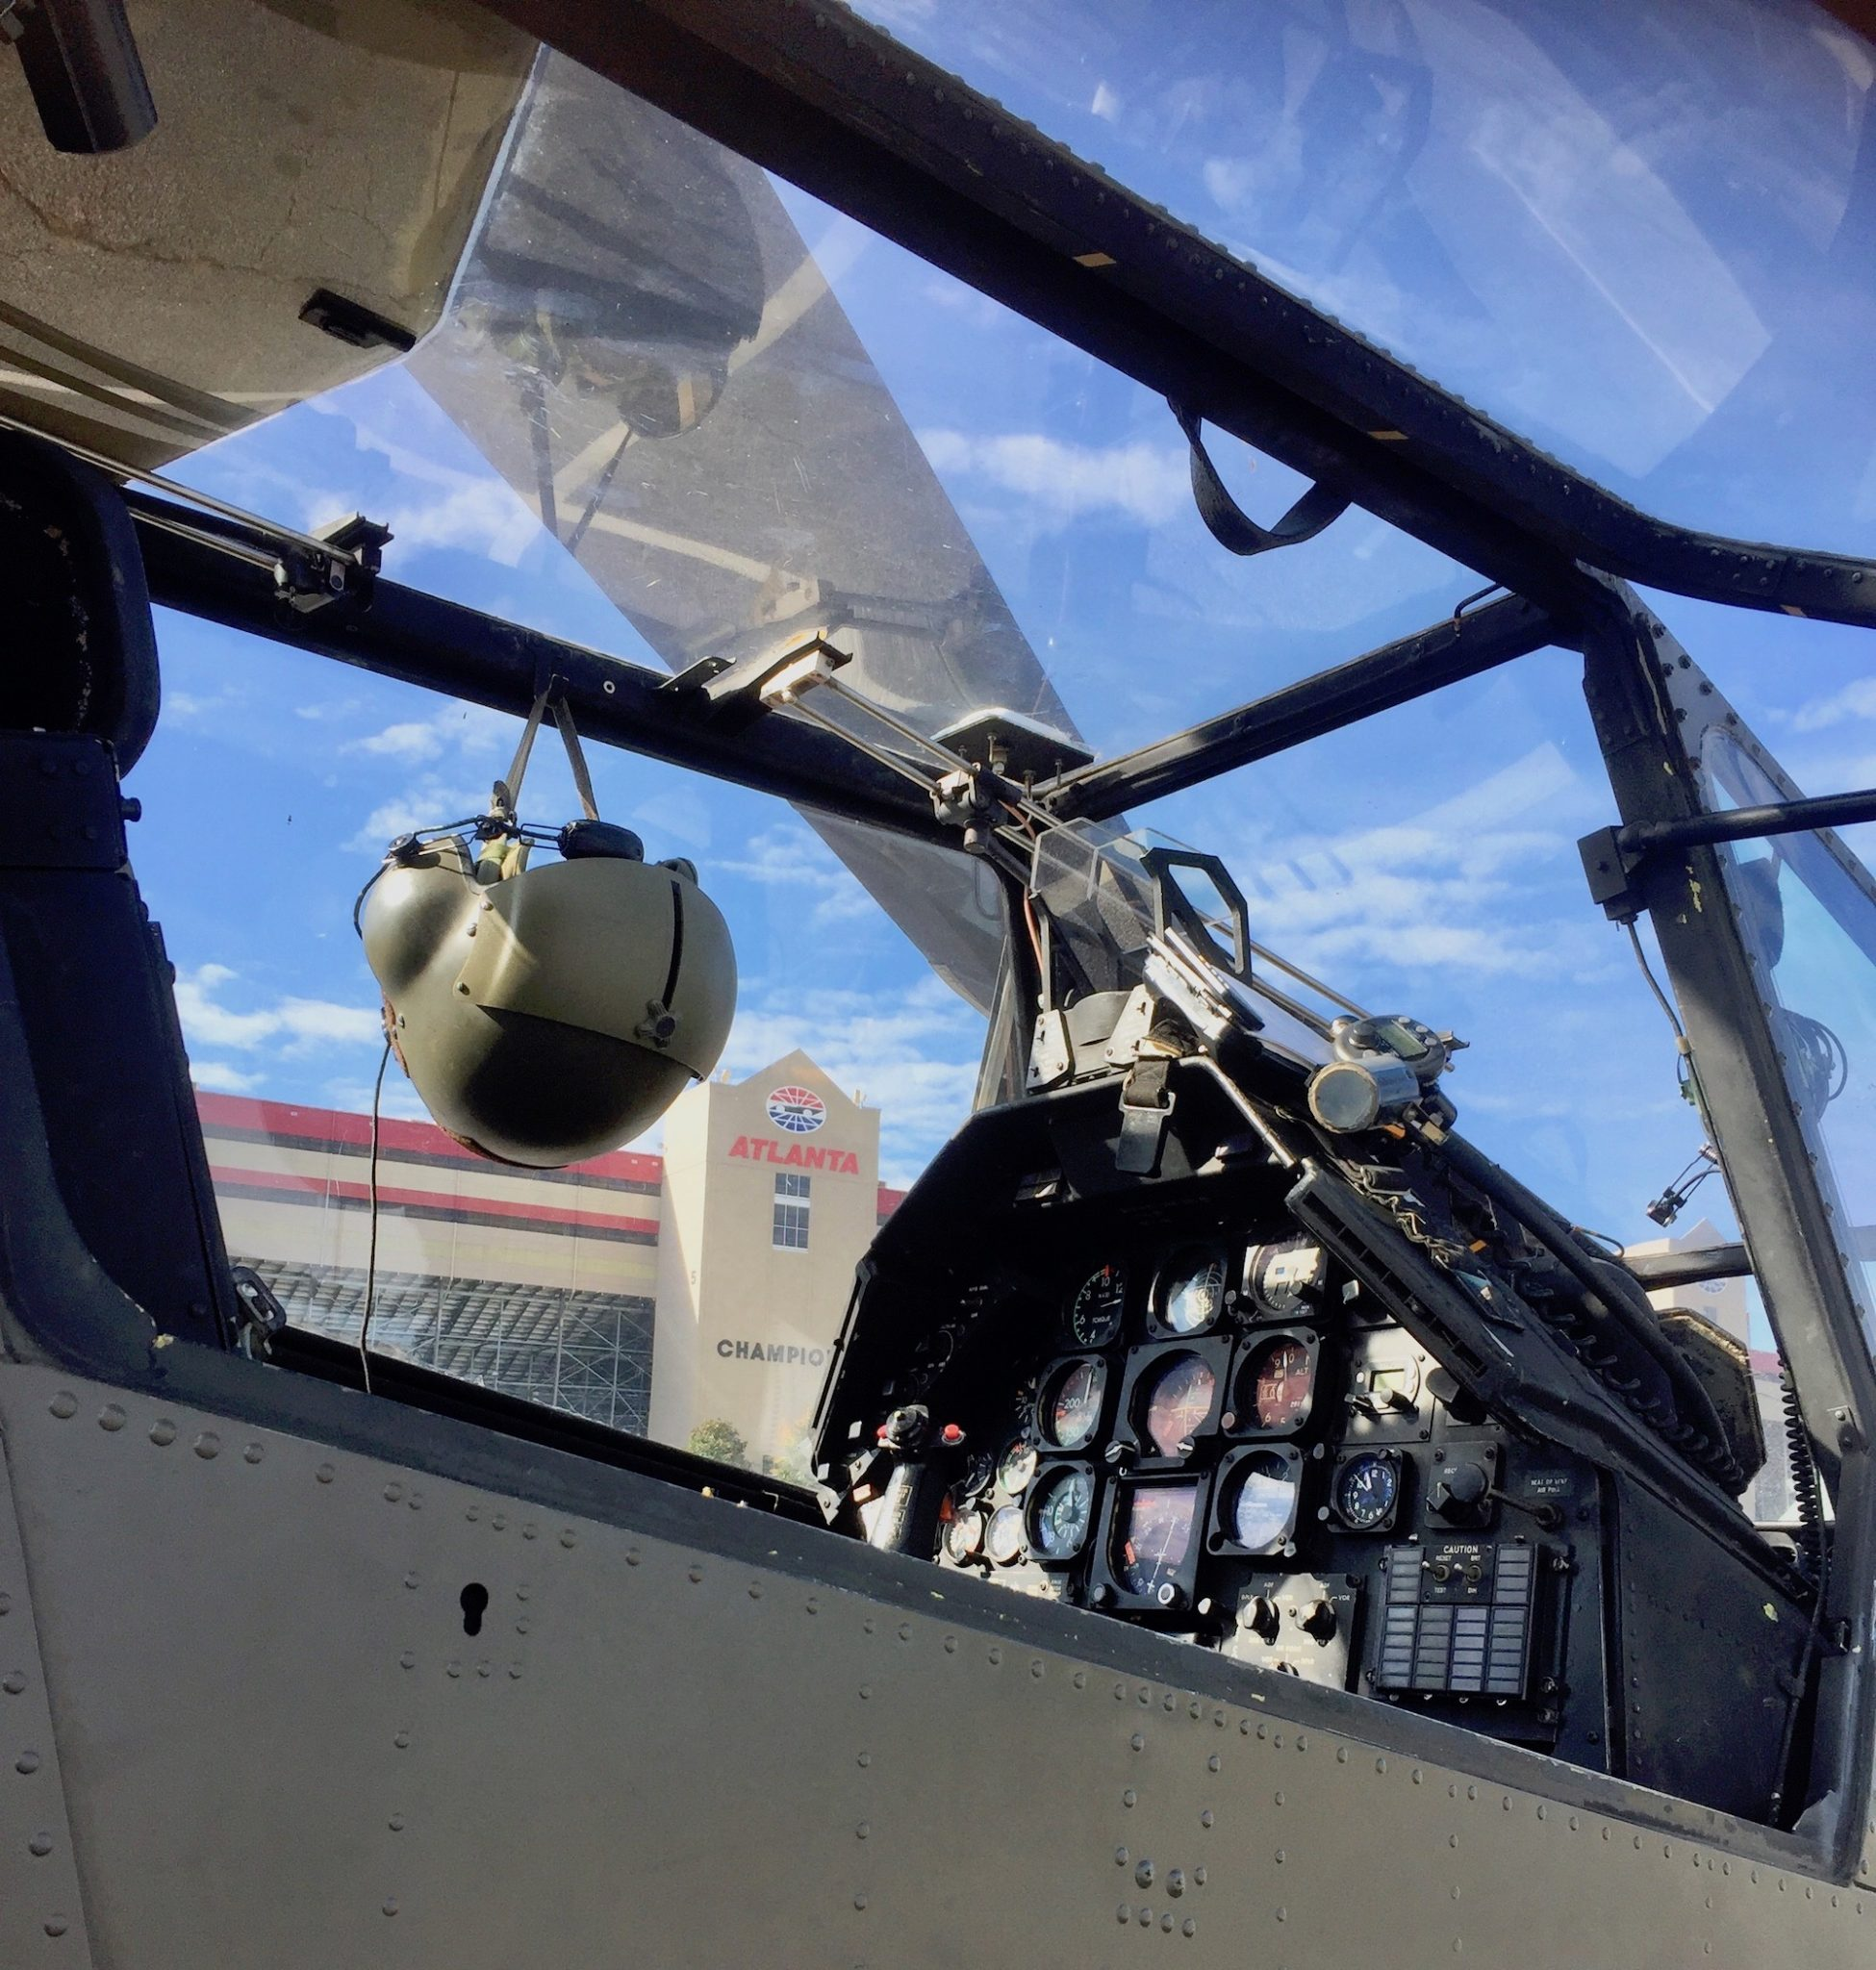 Outdoor fun in Henry County means flying high in Vietnam-era aircraft.